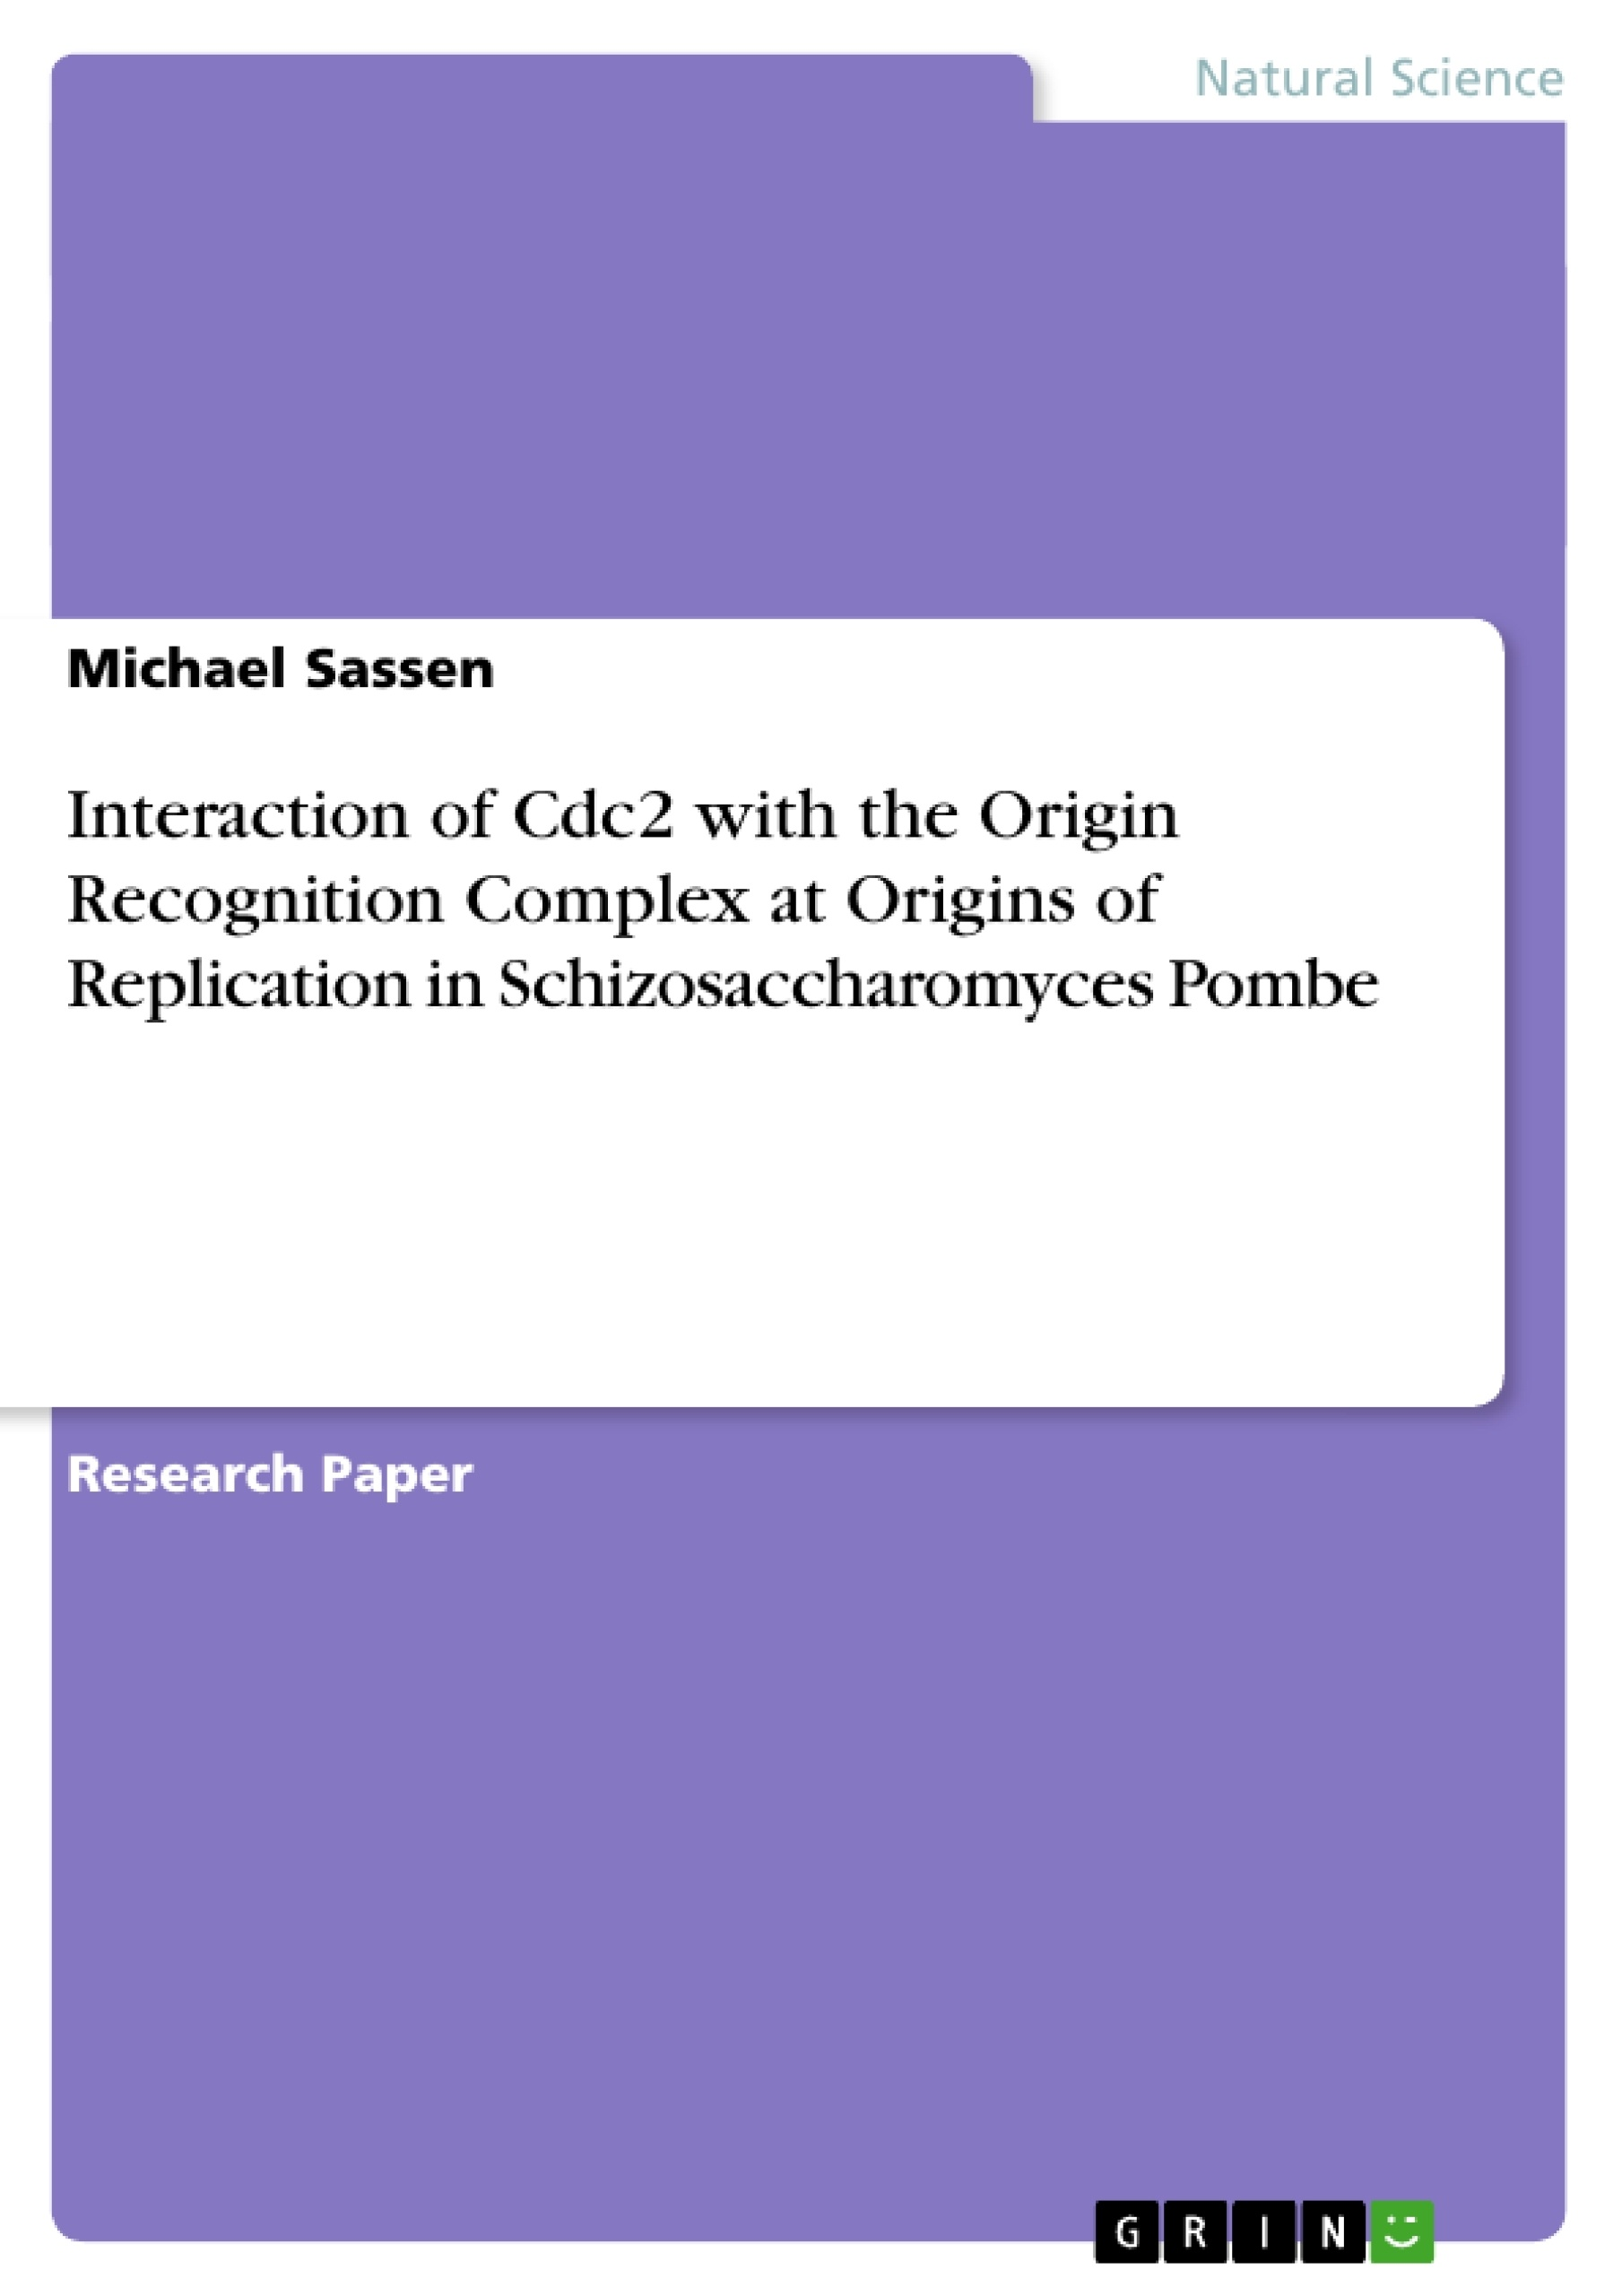 Title: Interaction of Cdc2 with the Origin Recognition Complex at Origins of Replication in Schizosaccharomyces Pombe